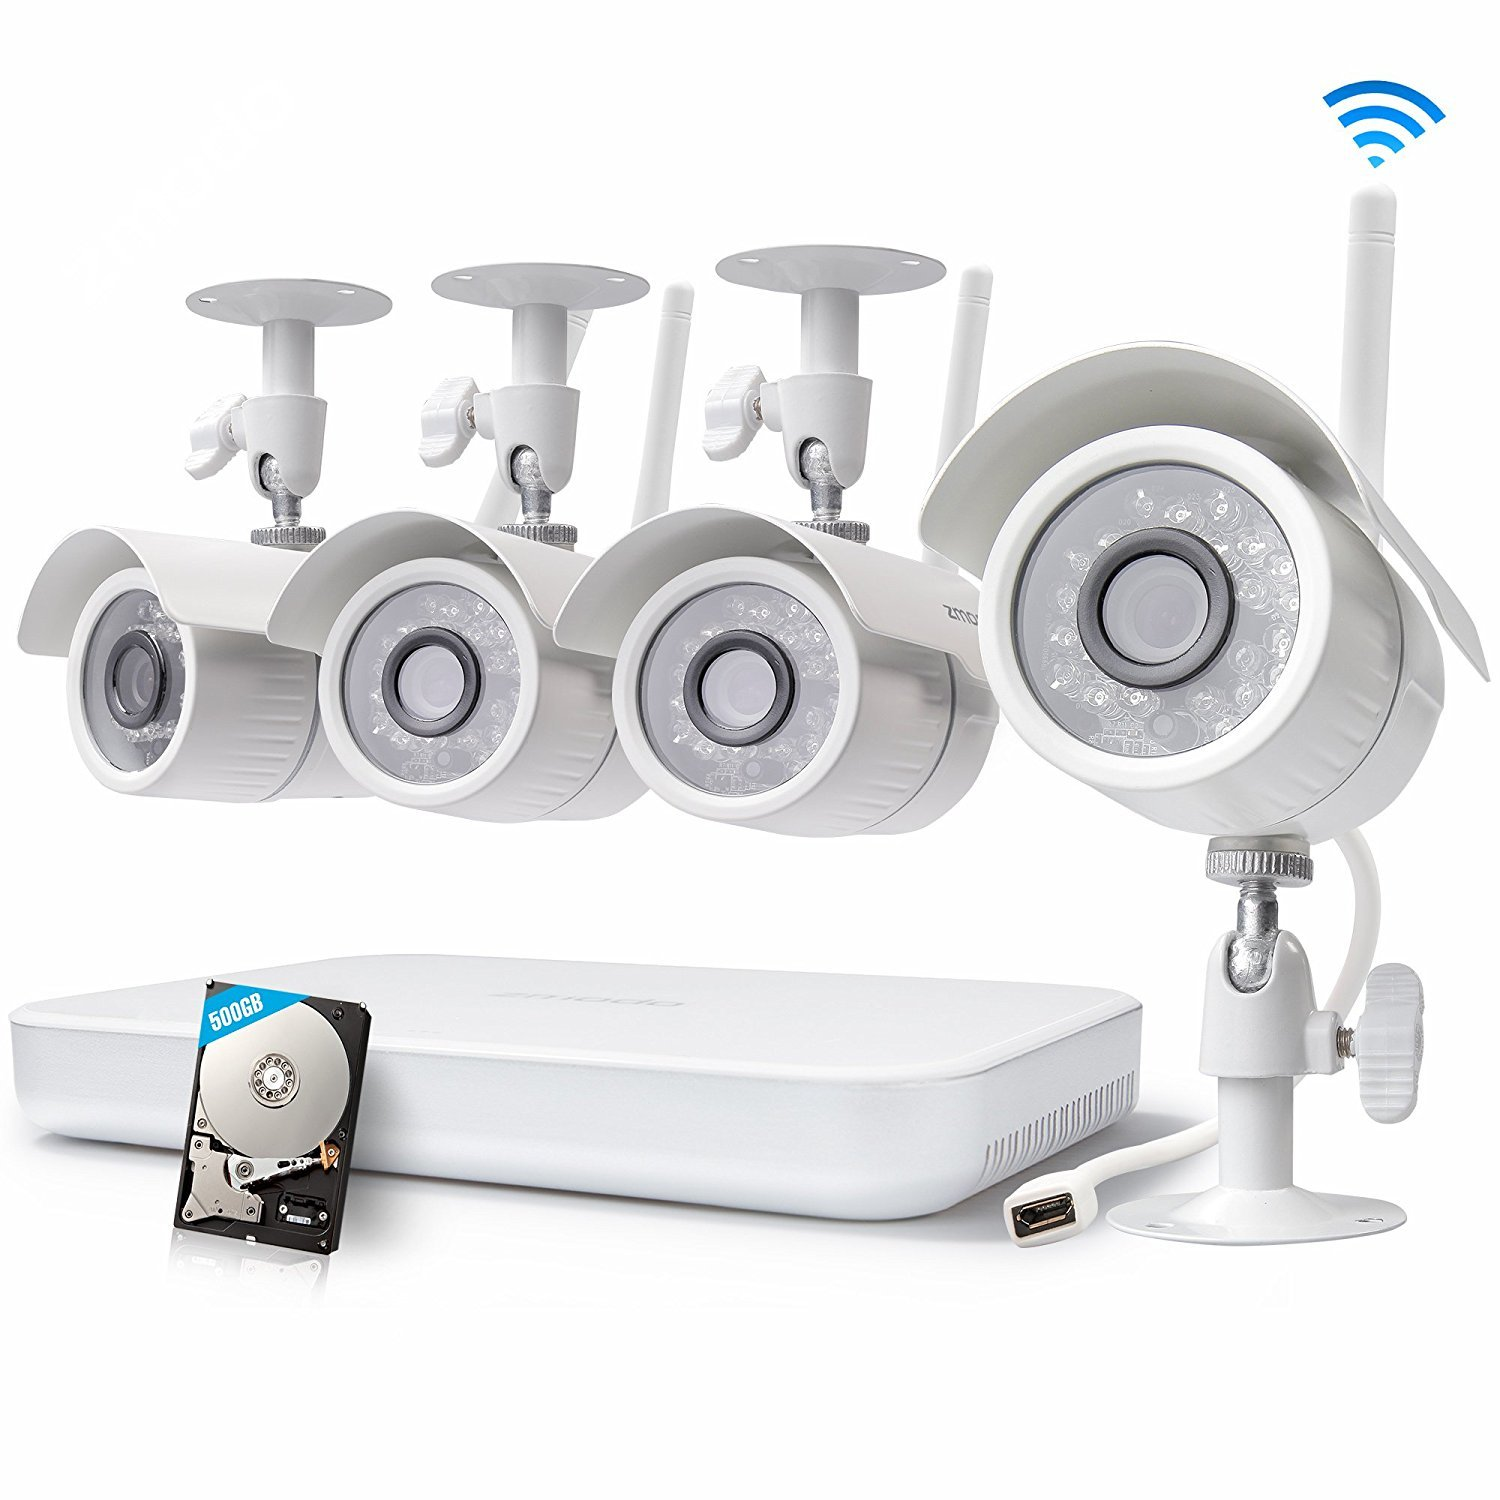 Zmodo 8CH Wireless Security Camera System - 1080P HDMI NVR with 500GB Hard Drive, 4 x 720P HD Wireless Cameras Night Vision - WiFi Easy Installation No Video Cables Needed (Certified Refurbished)